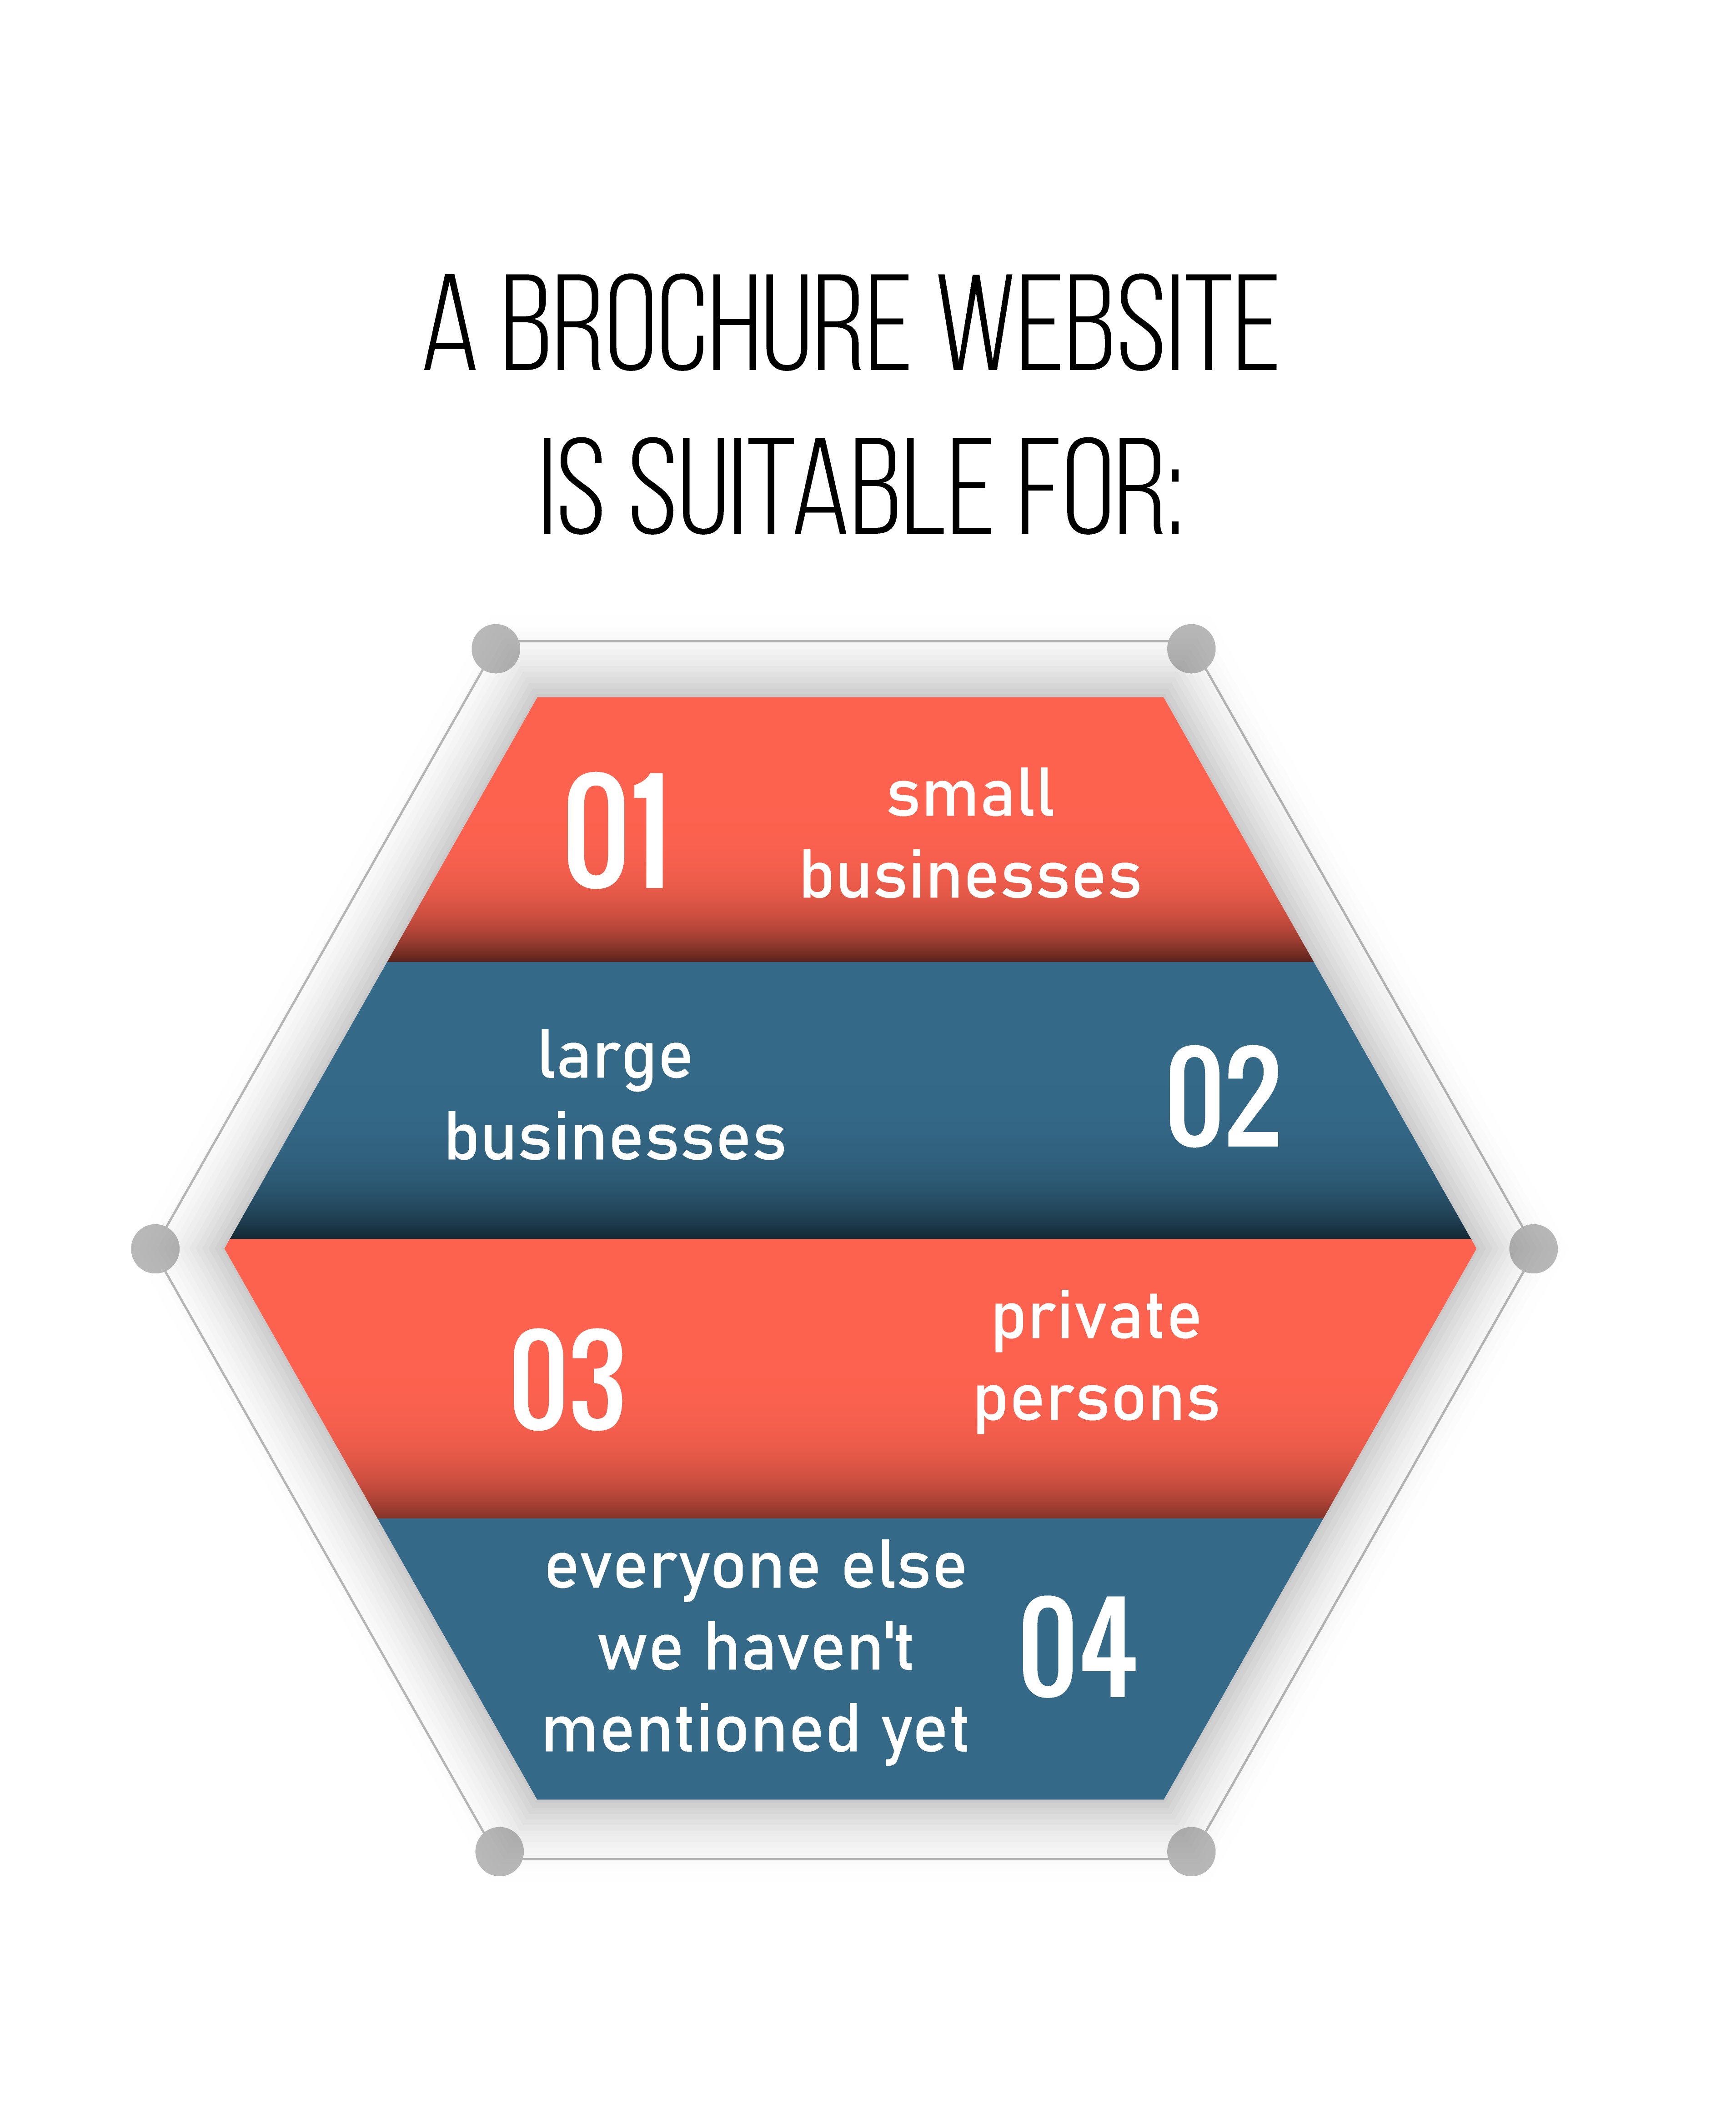 brochure website is suitable for everyone